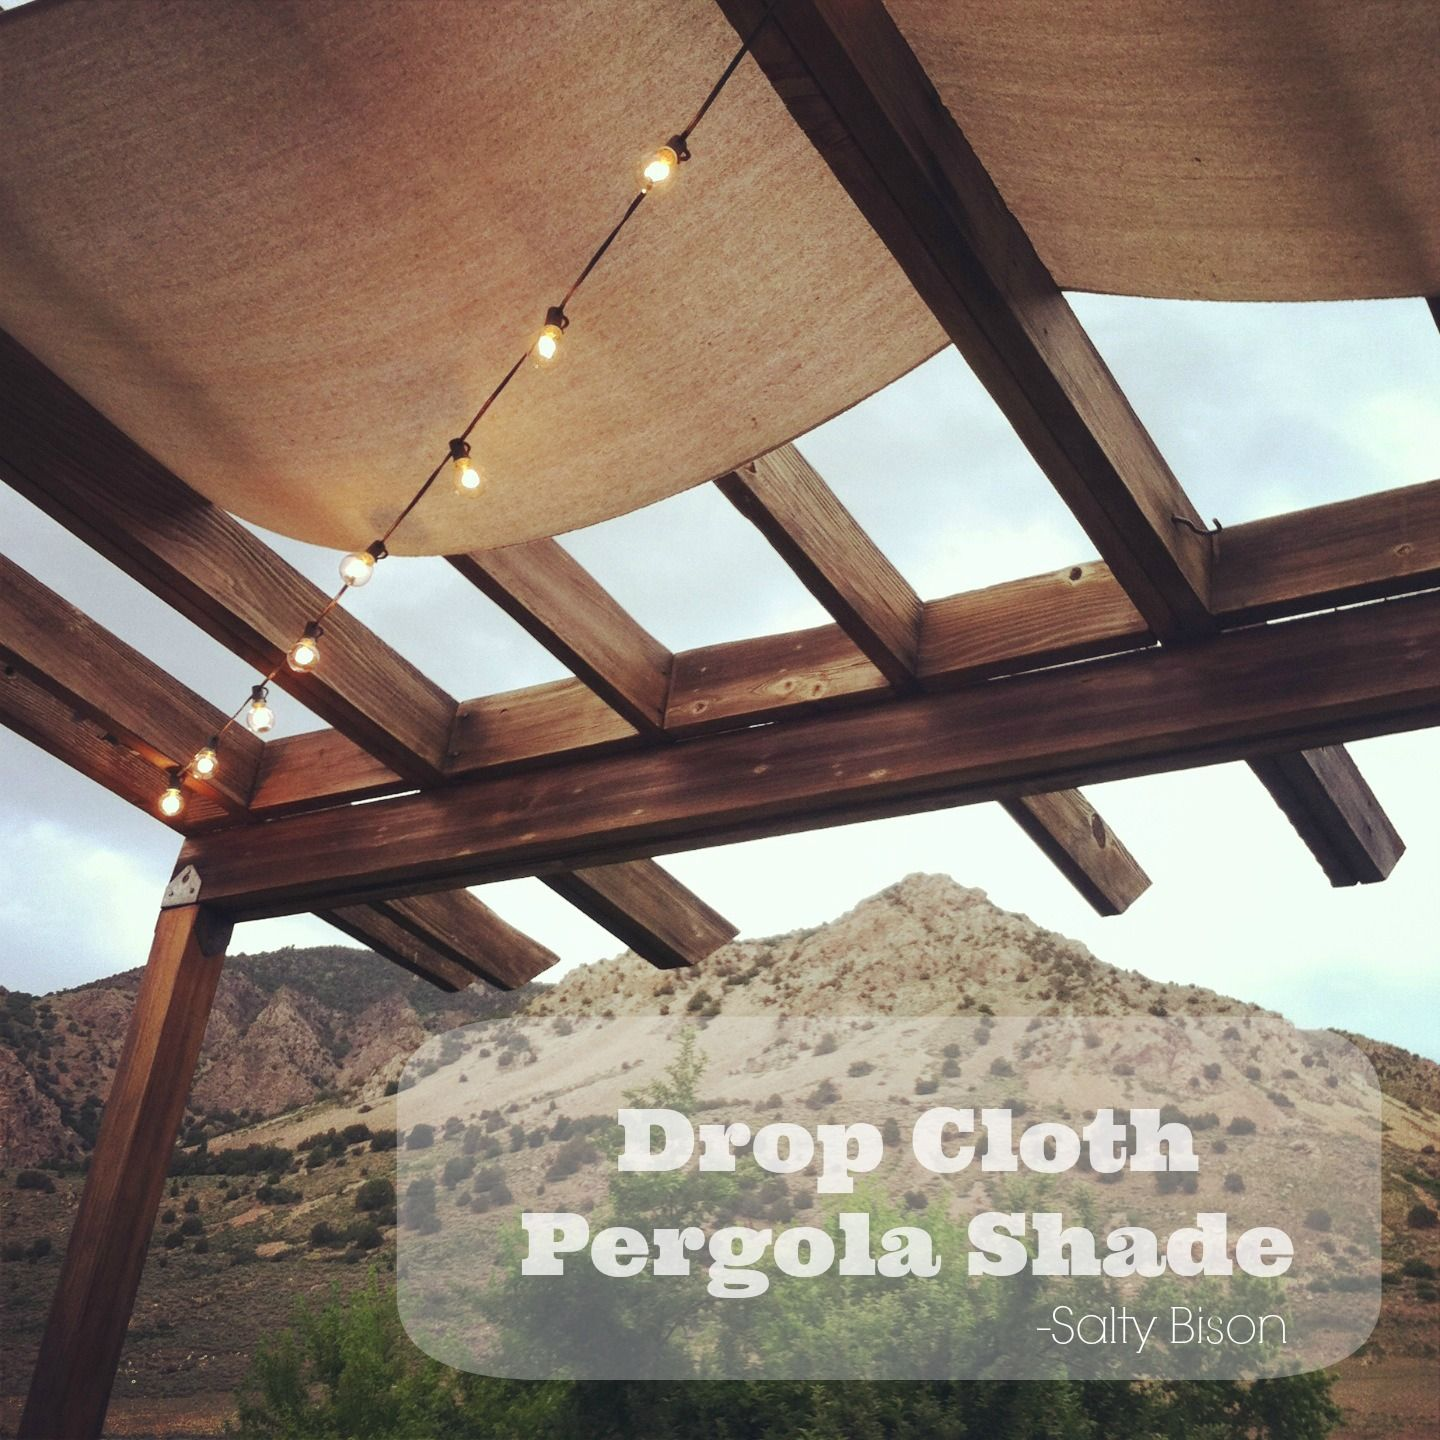 Pergola Shade on Pinterest | Pergola Cover, Patio Gazebo and ...